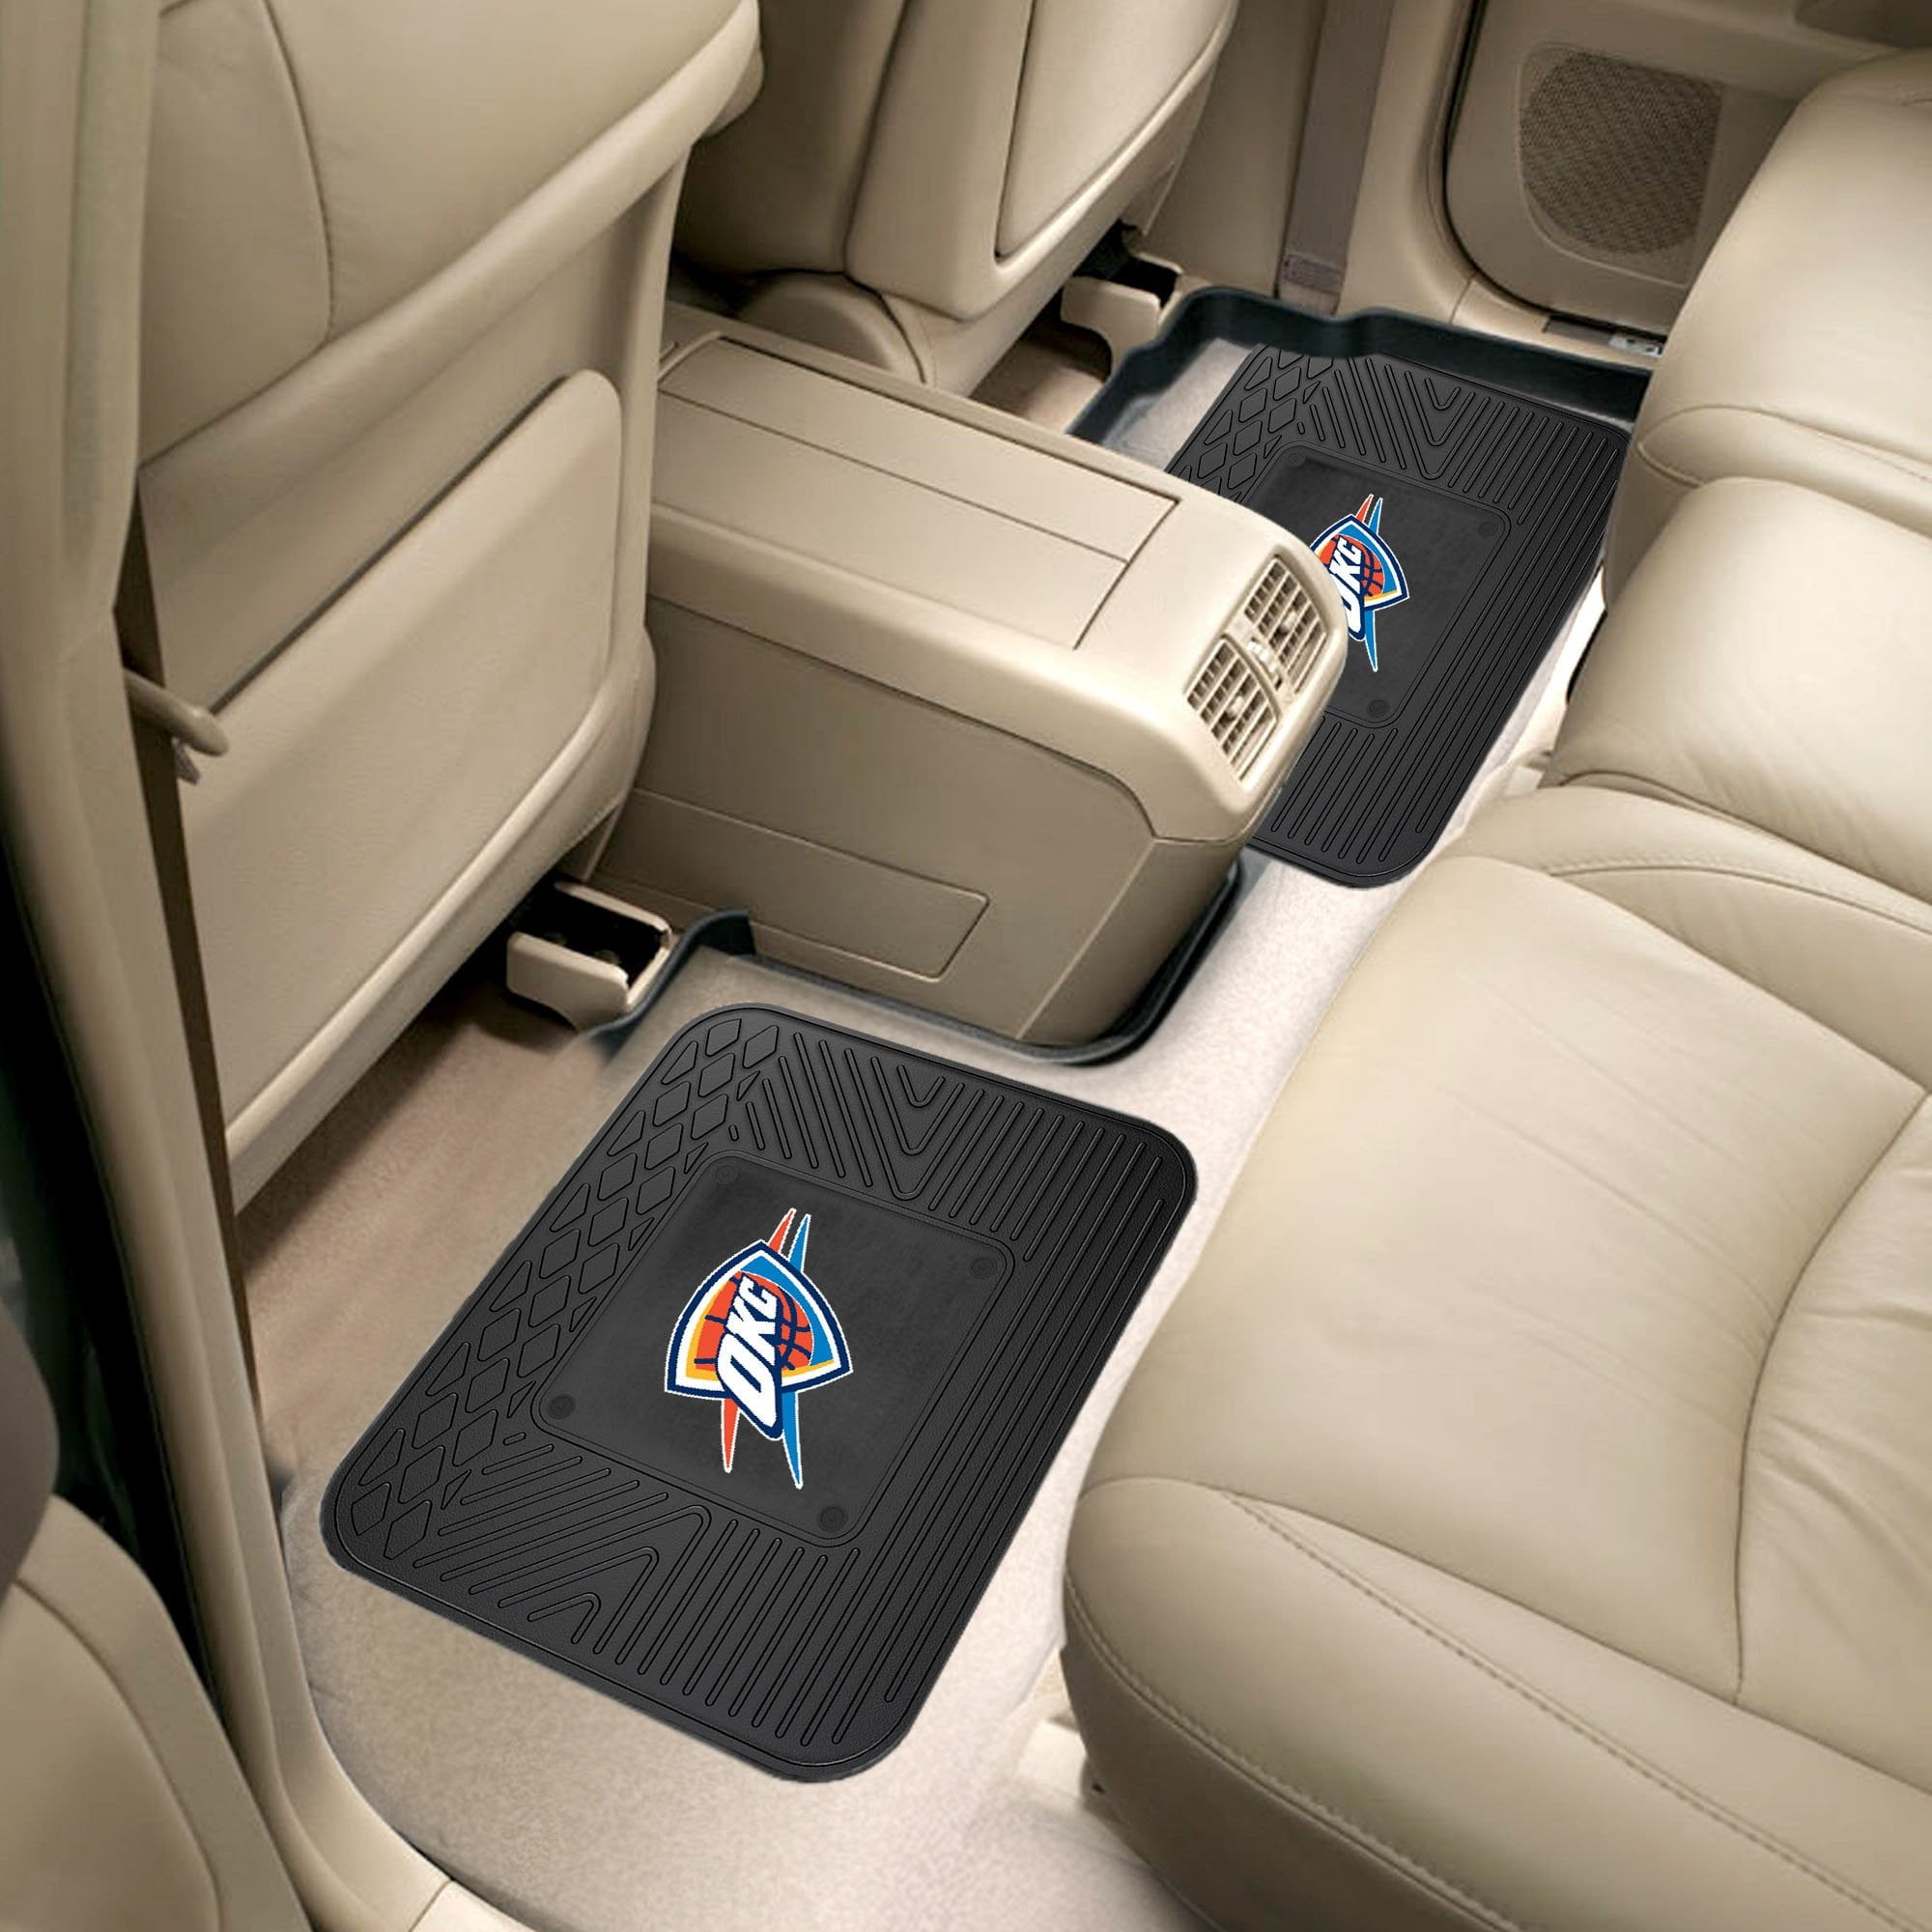 NBA - Oklahoma City Thunder 2 Utility Car Mats